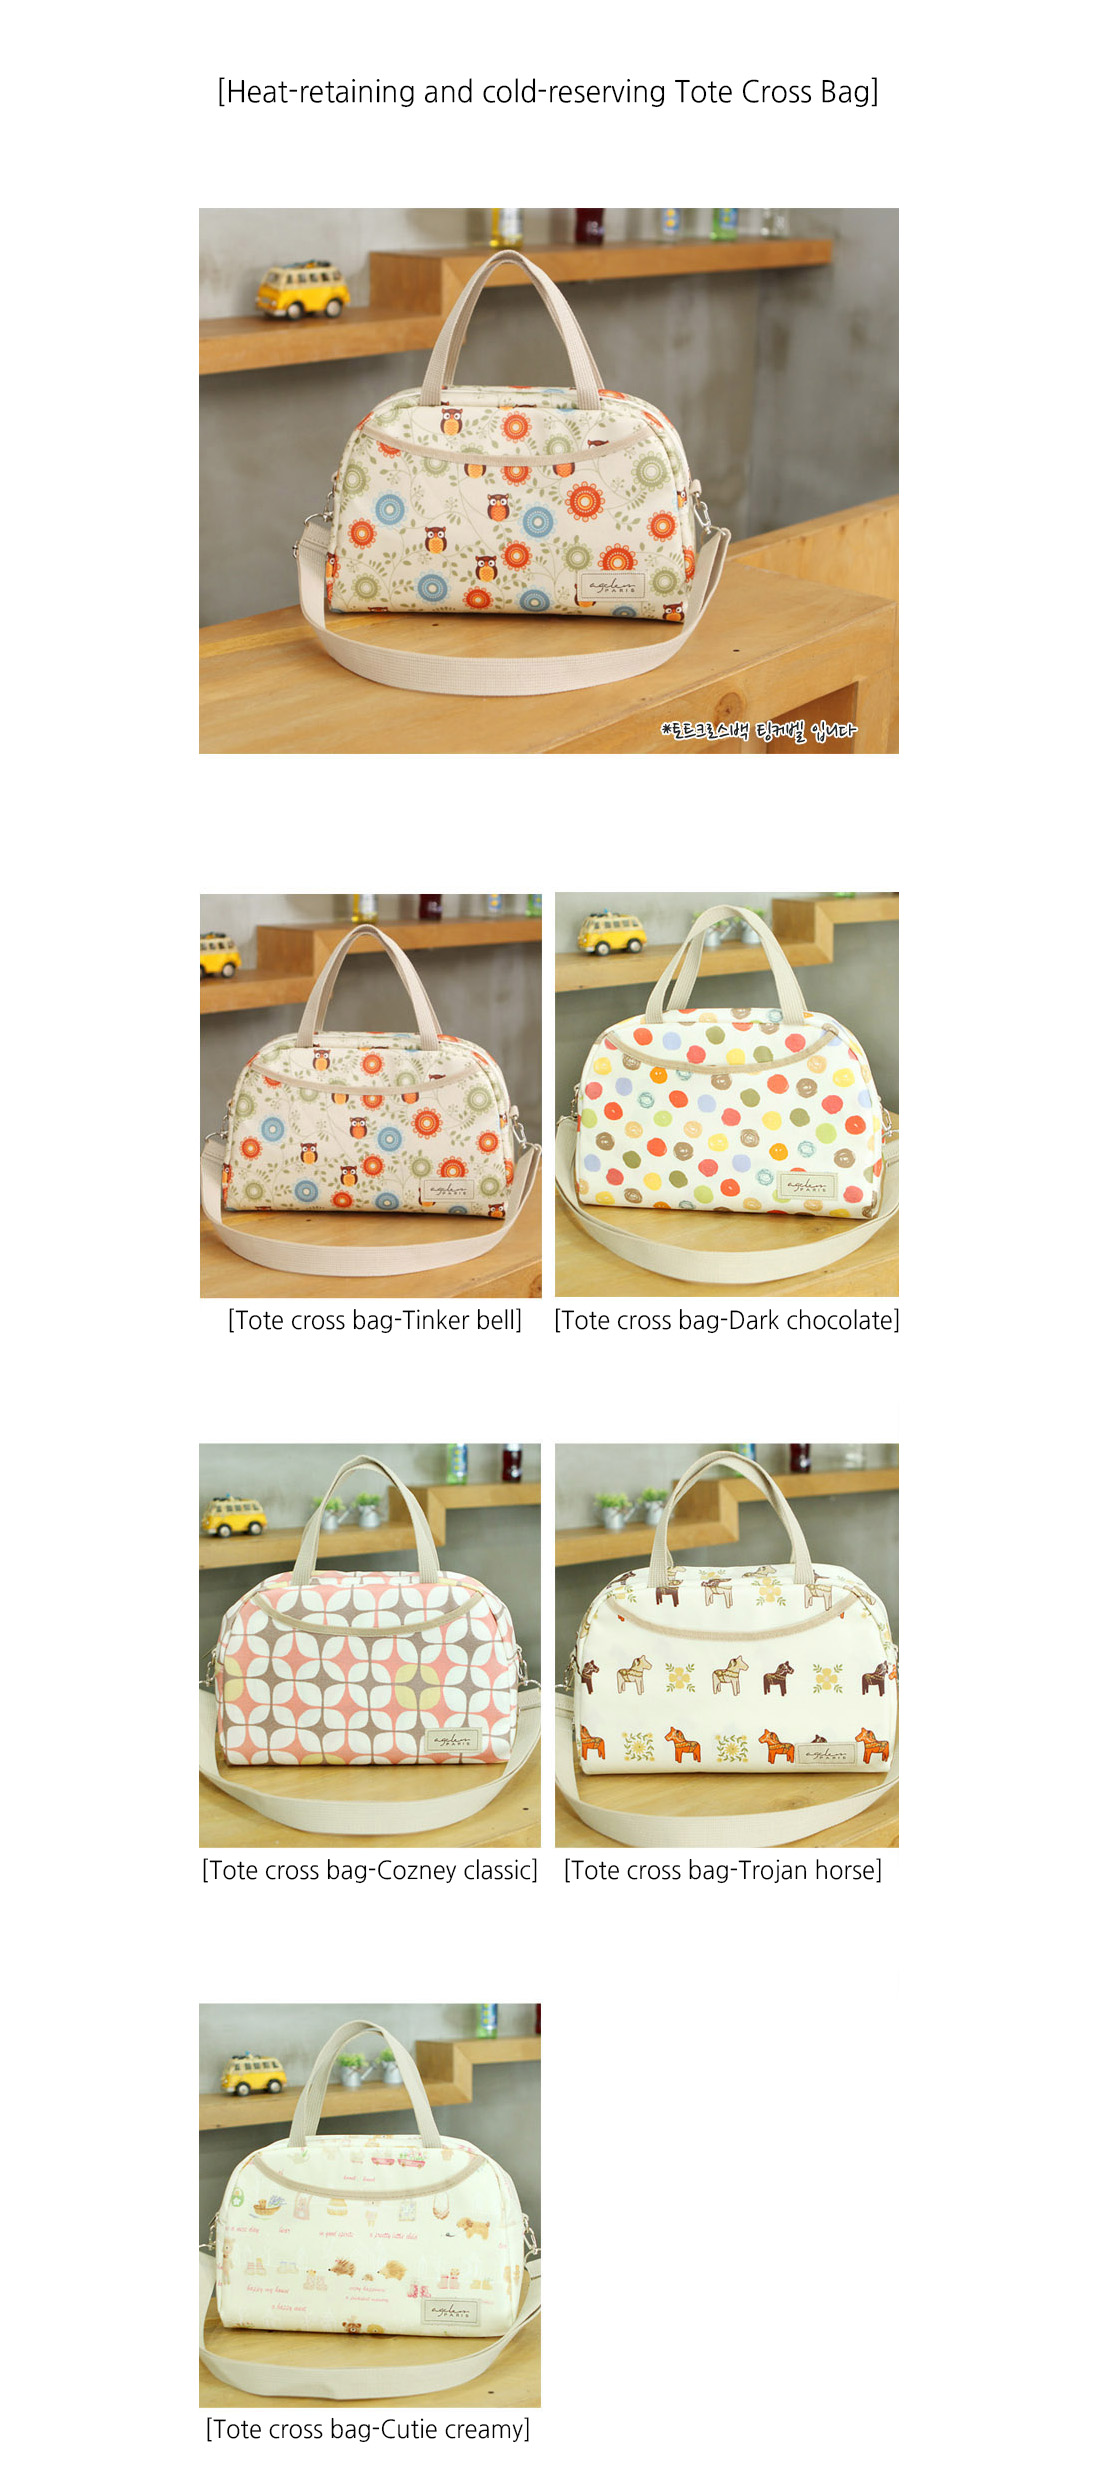 tote cross bag